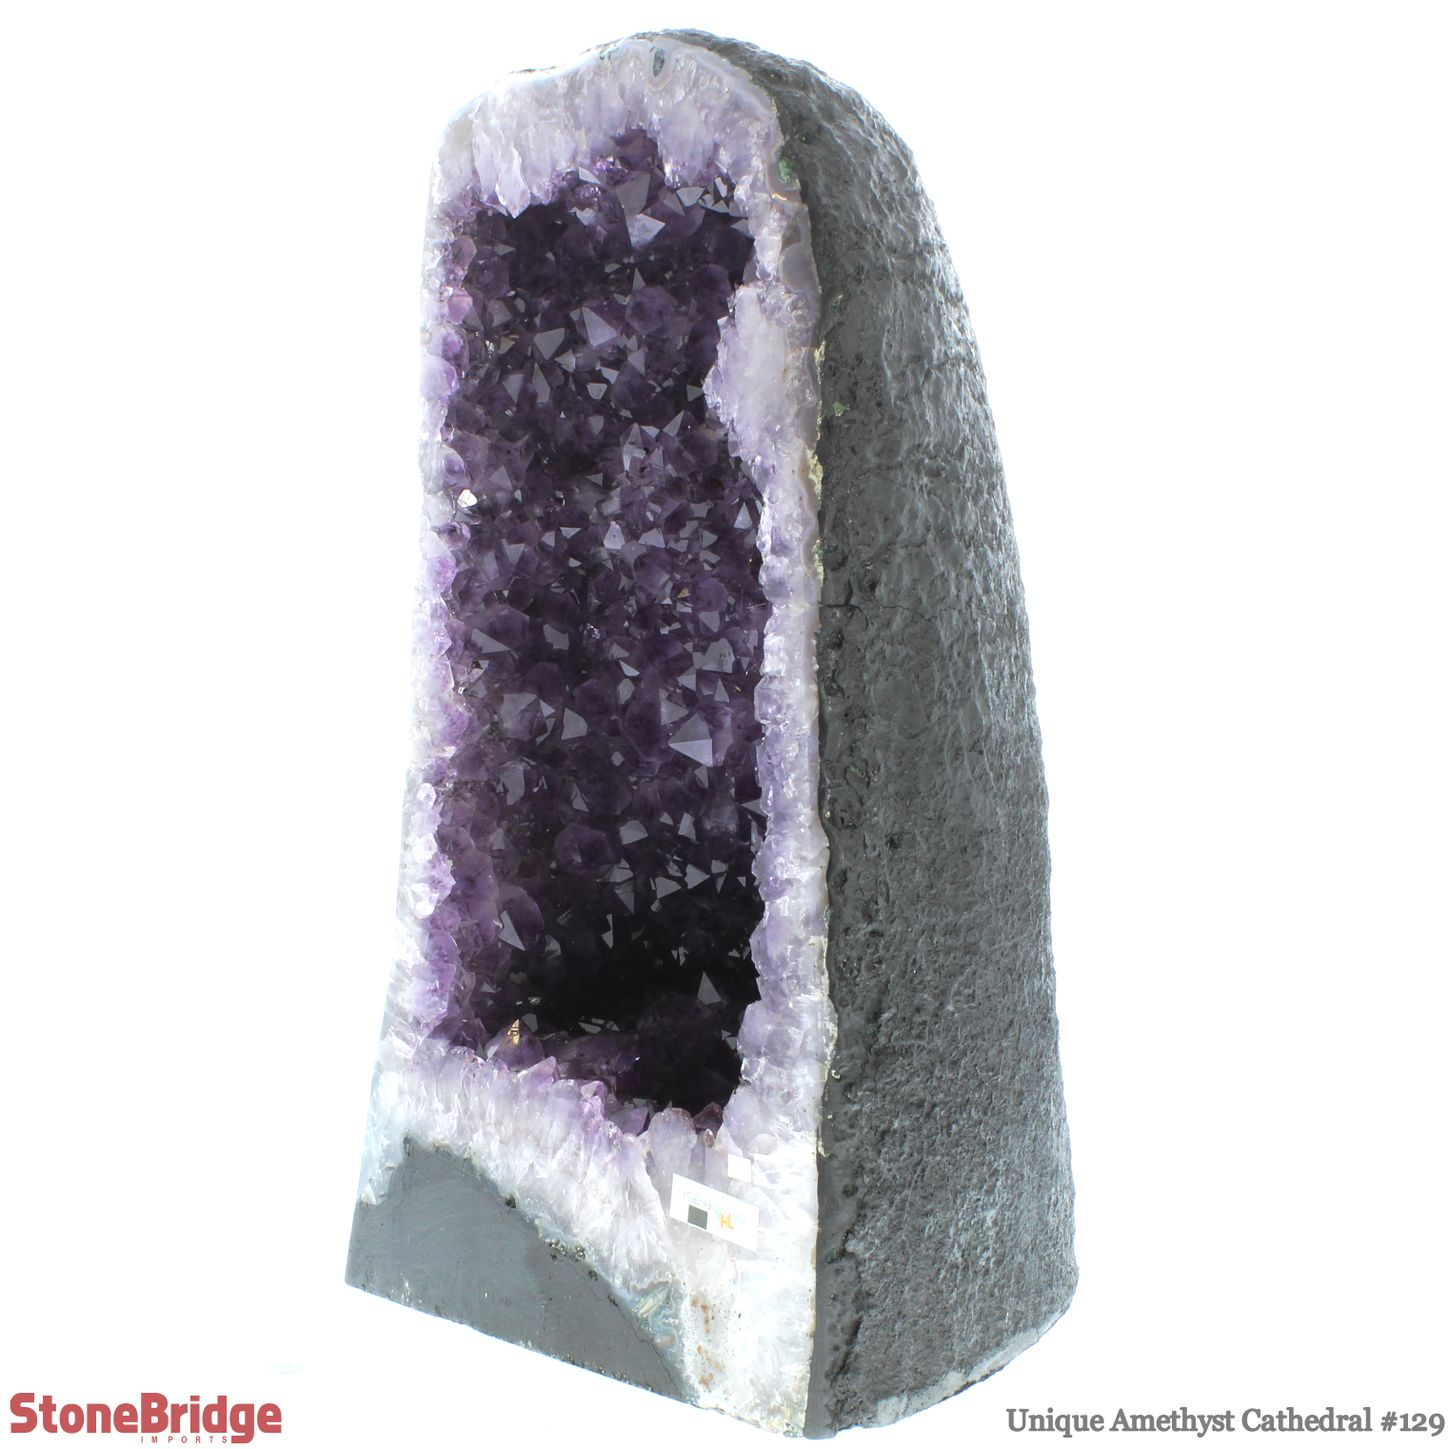 CATAMU129_AMETHYST_CATHEDRAL_UNIQUE_2.jpg